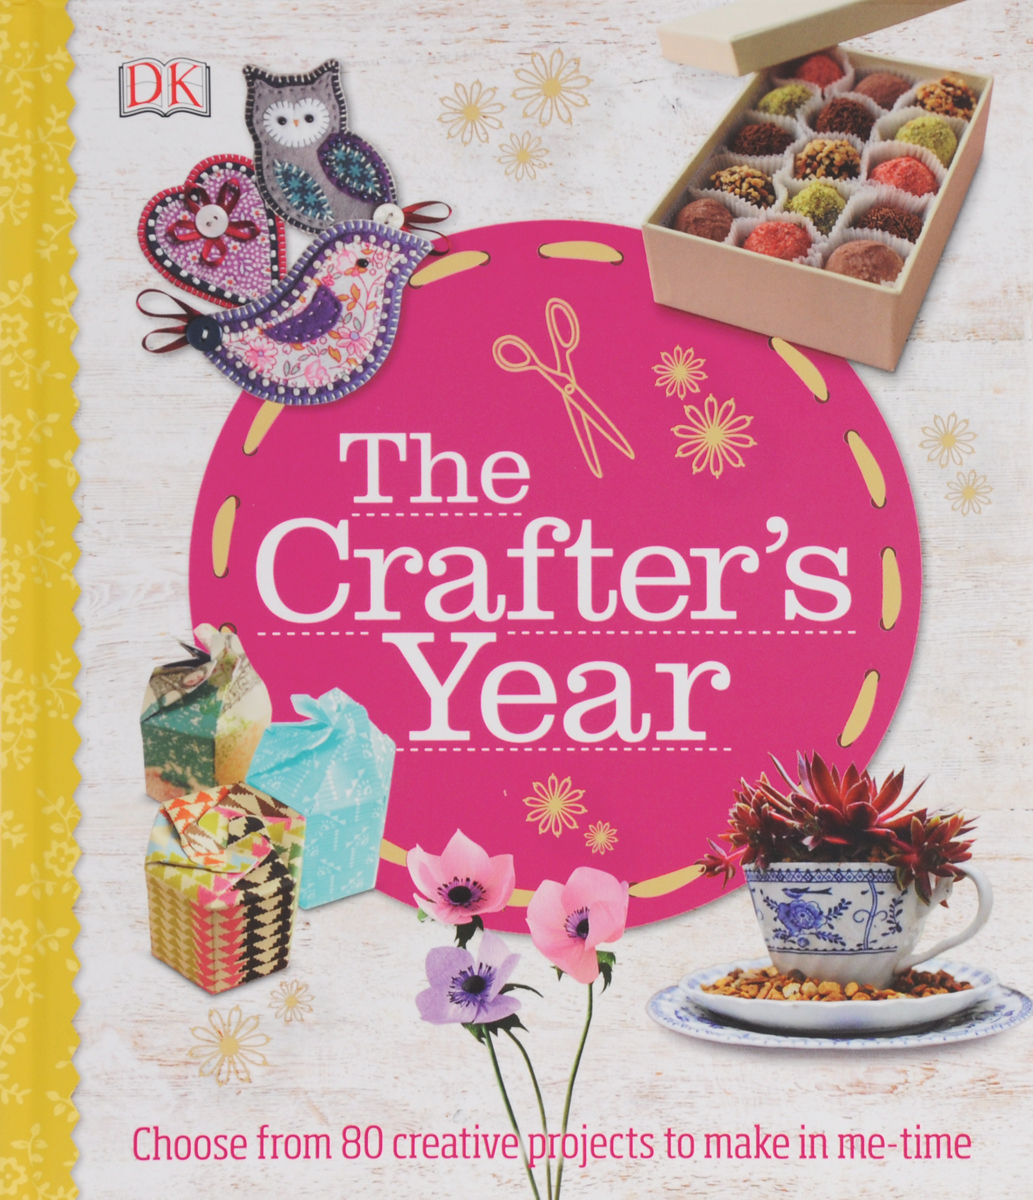 The Crafter's Year history year by year